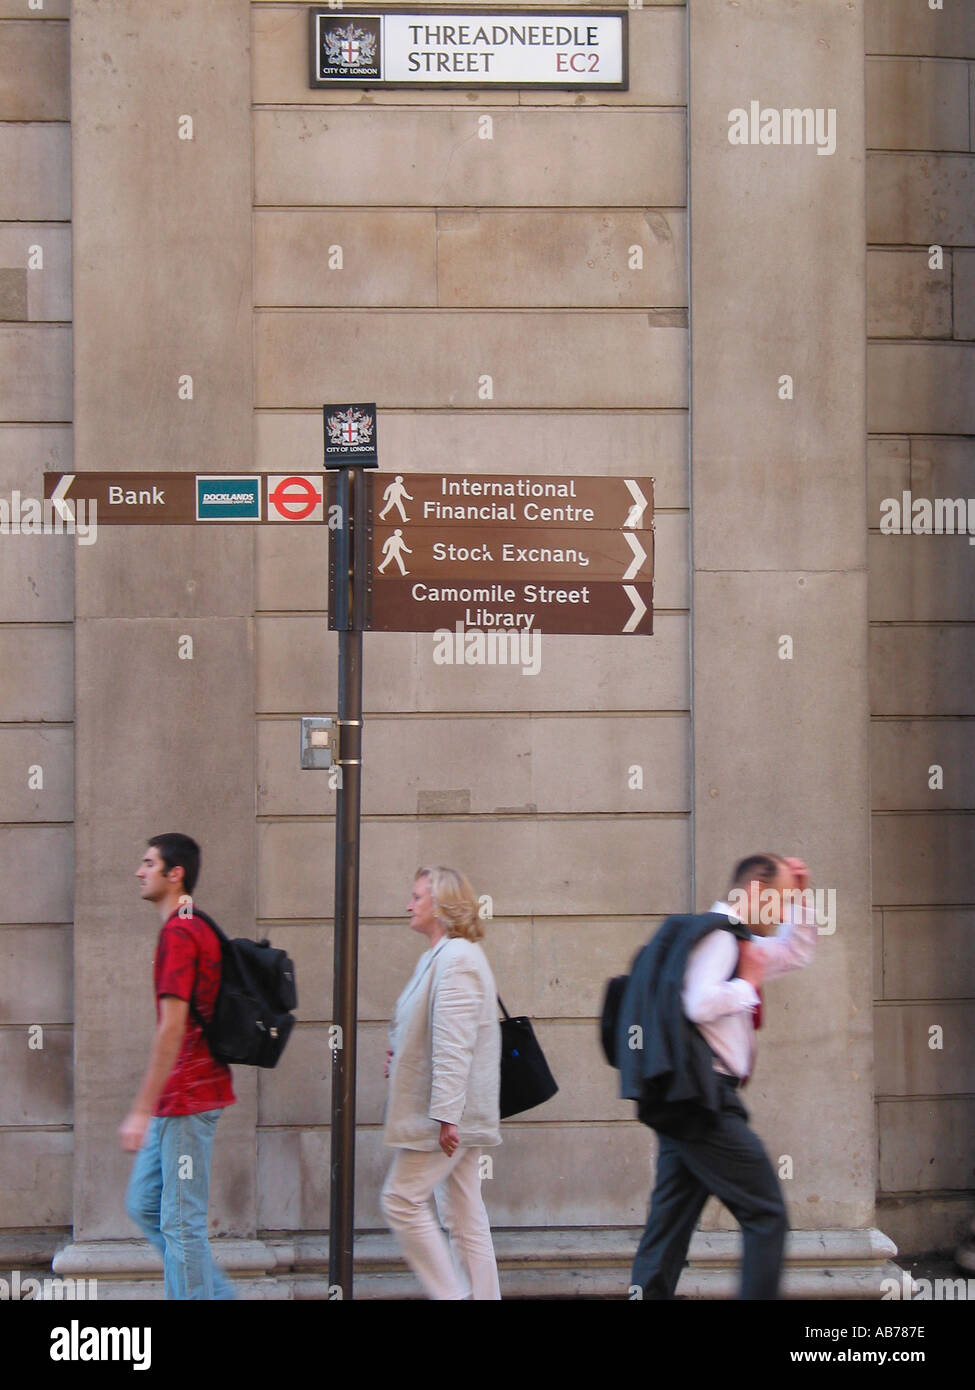 City Workers Banking Area Bank of England Area Threadneedle Street EC2 City of London Street Sign London GB - Stock Image